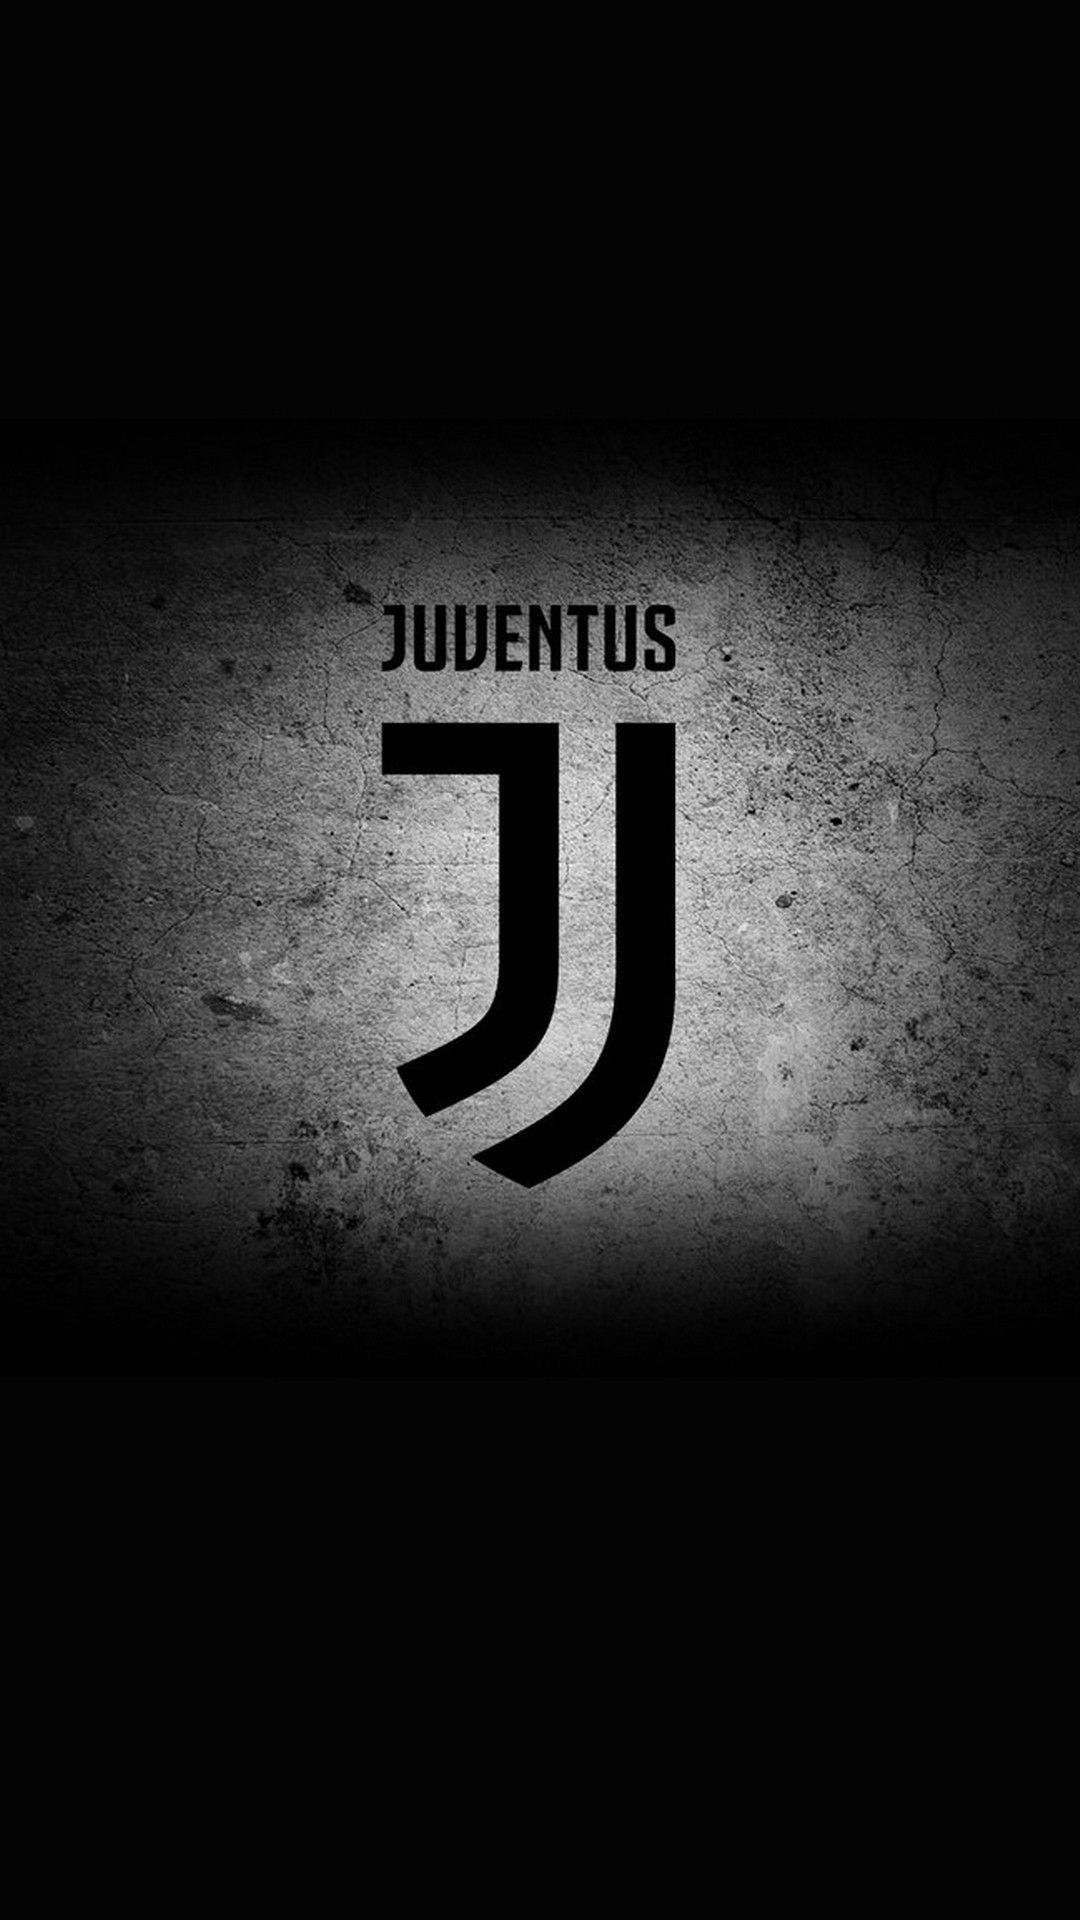 Logo Basketball Iphone Background In 2020 Juventus Wallpapers Juventus Liverpool Wallpapers